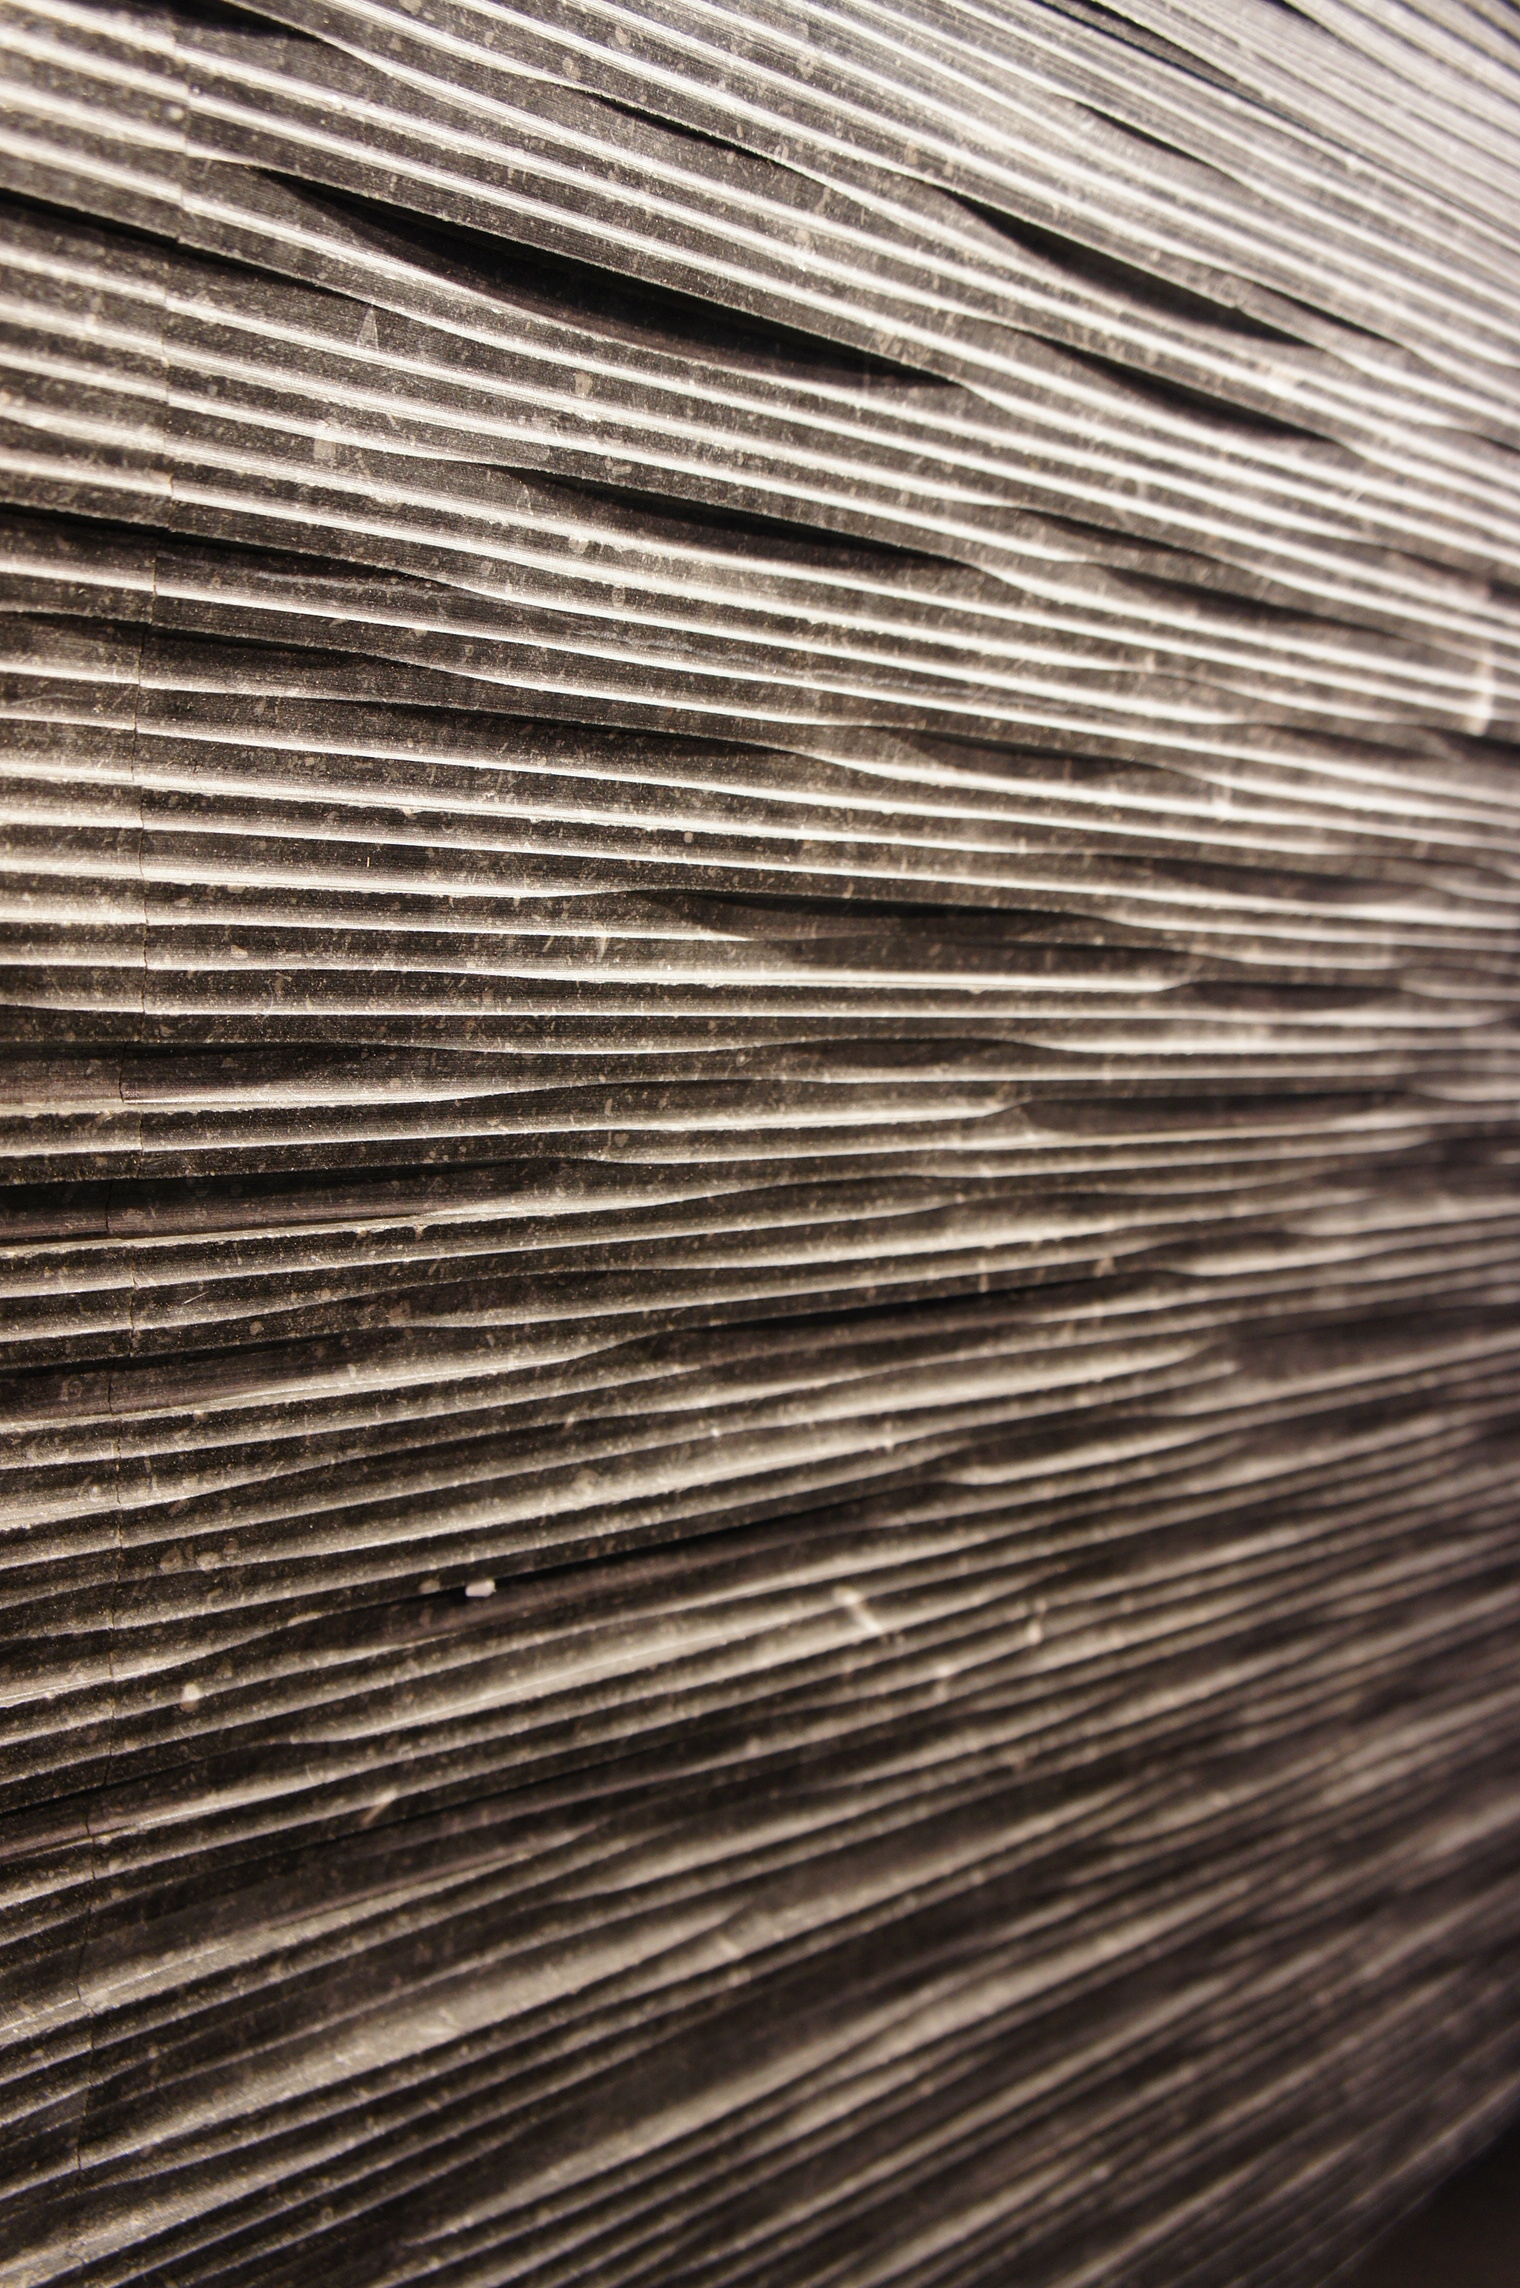 Basket-weave type pattern. Notice the light and dark contrast from the grooves.Hedonism collection by  Petra Antiqua